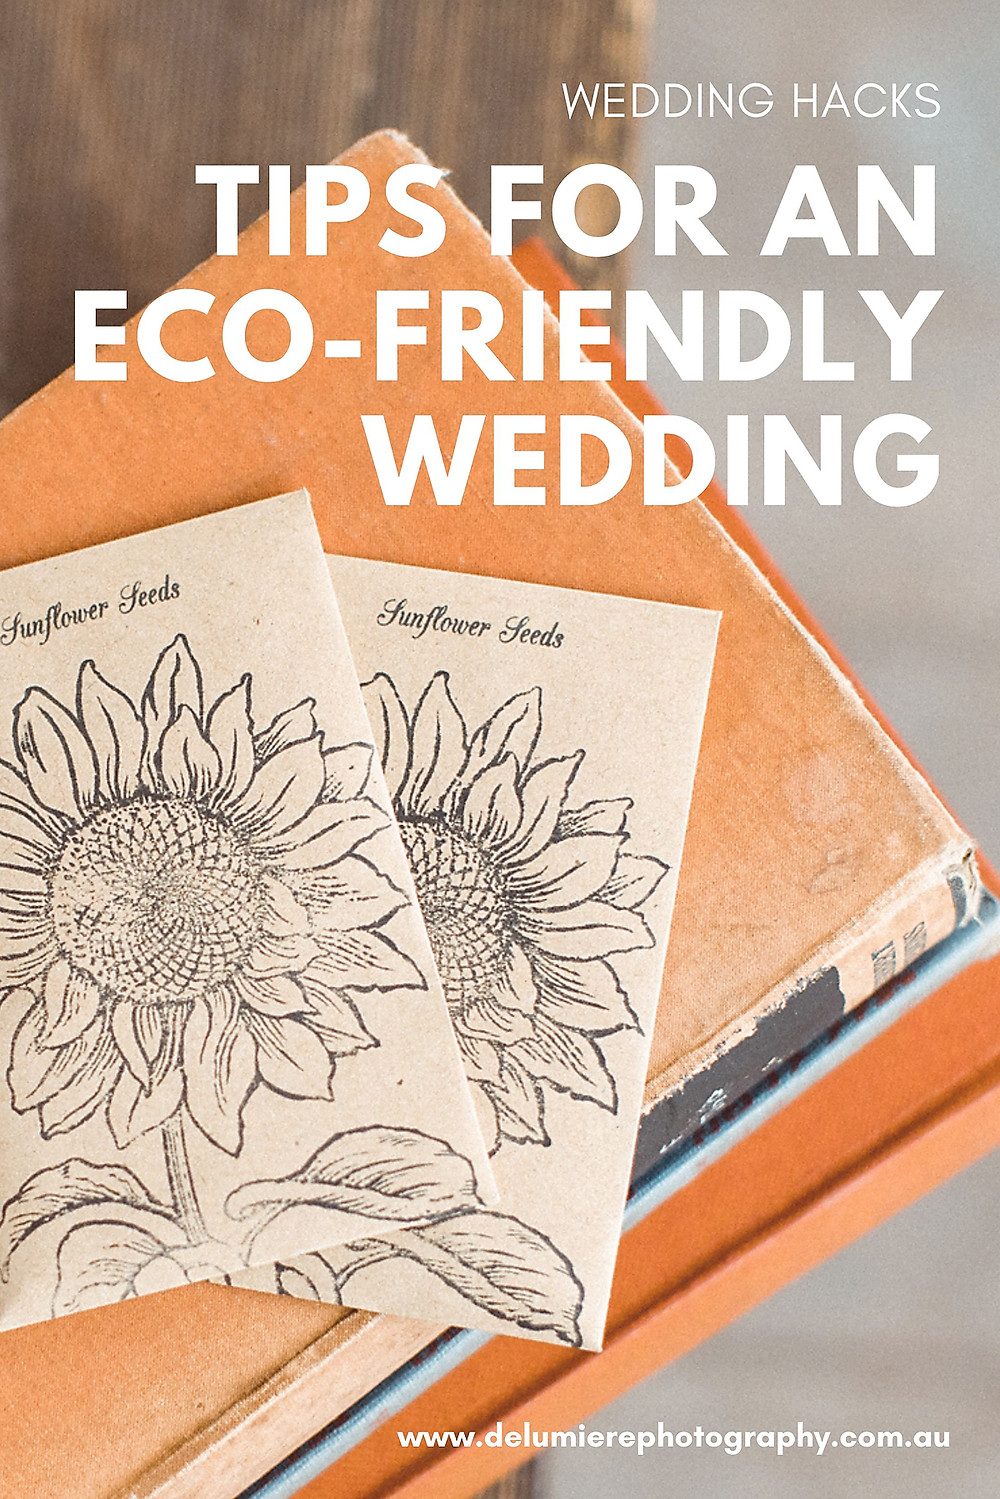 tips for an eco-friendly wedding de lumiere photography